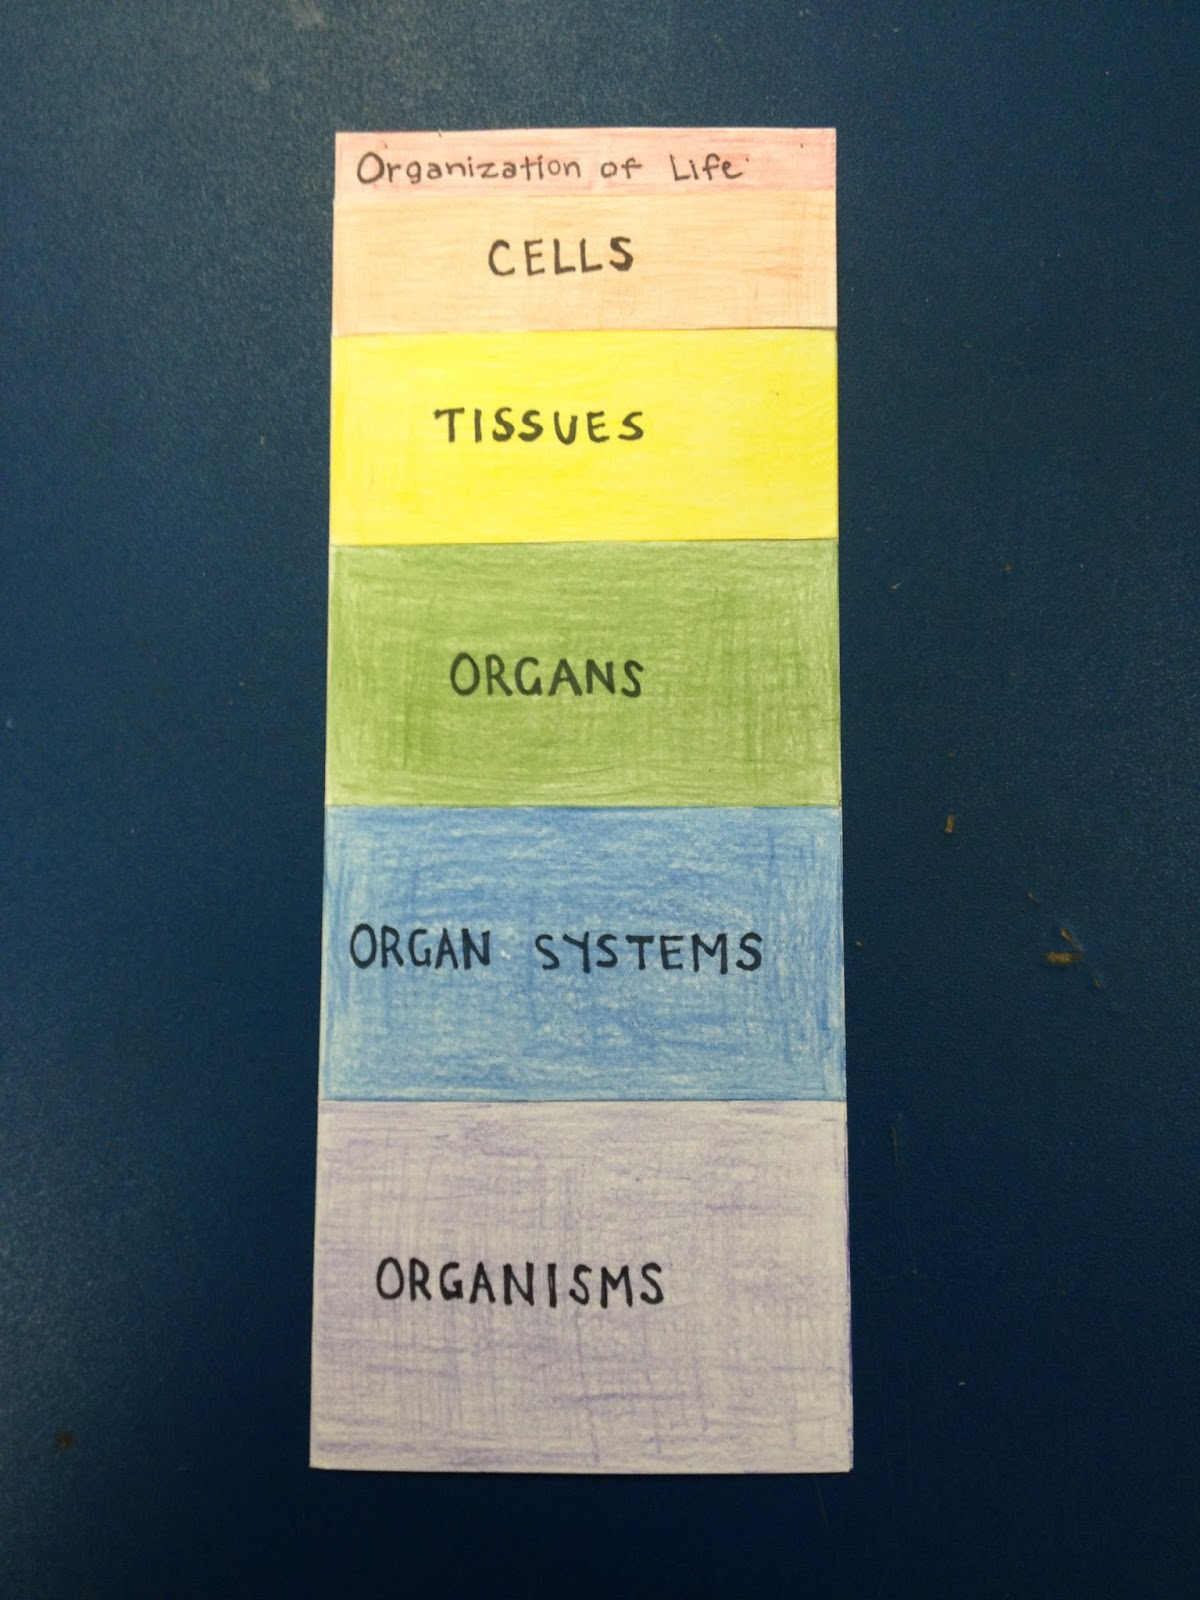 Monday March 11 2013 & Cards and Cardigans: Organization of Life Foldable